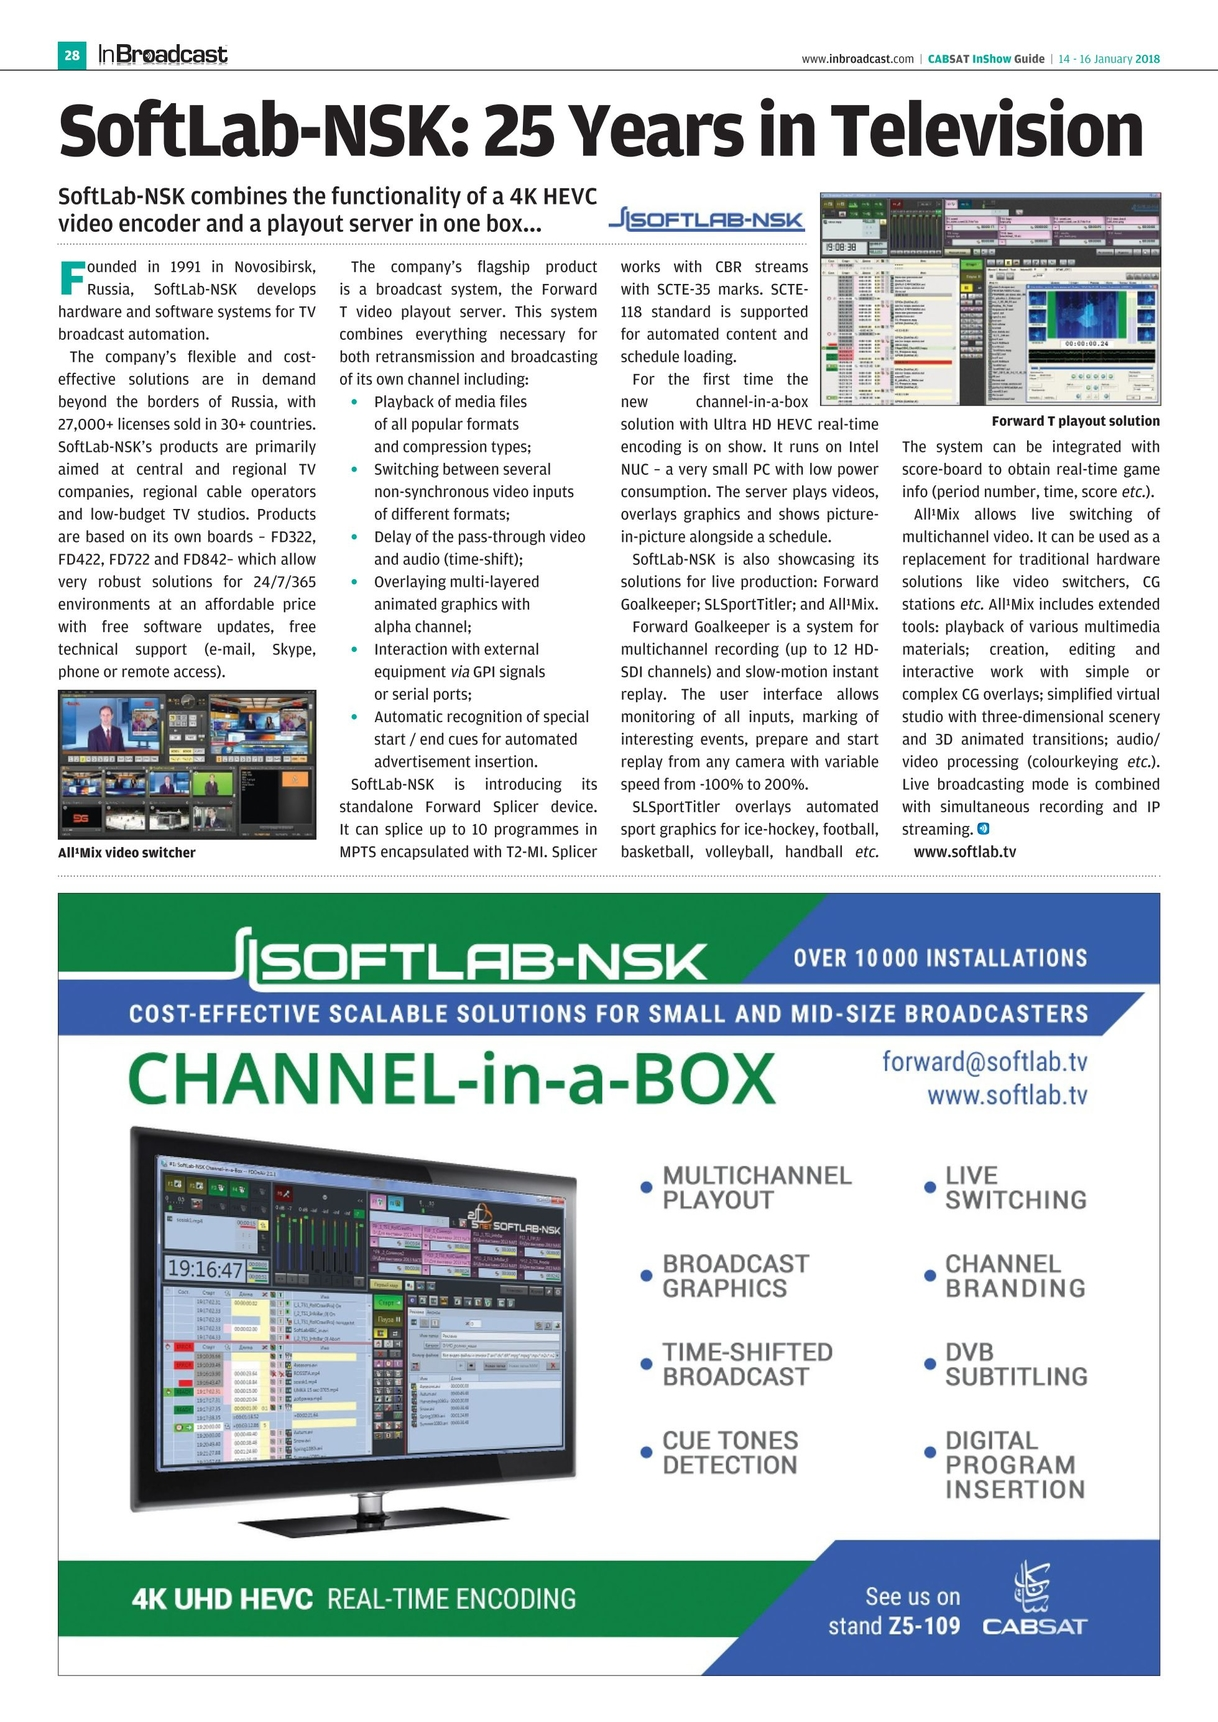 In Broadcast - CABSAT 2018